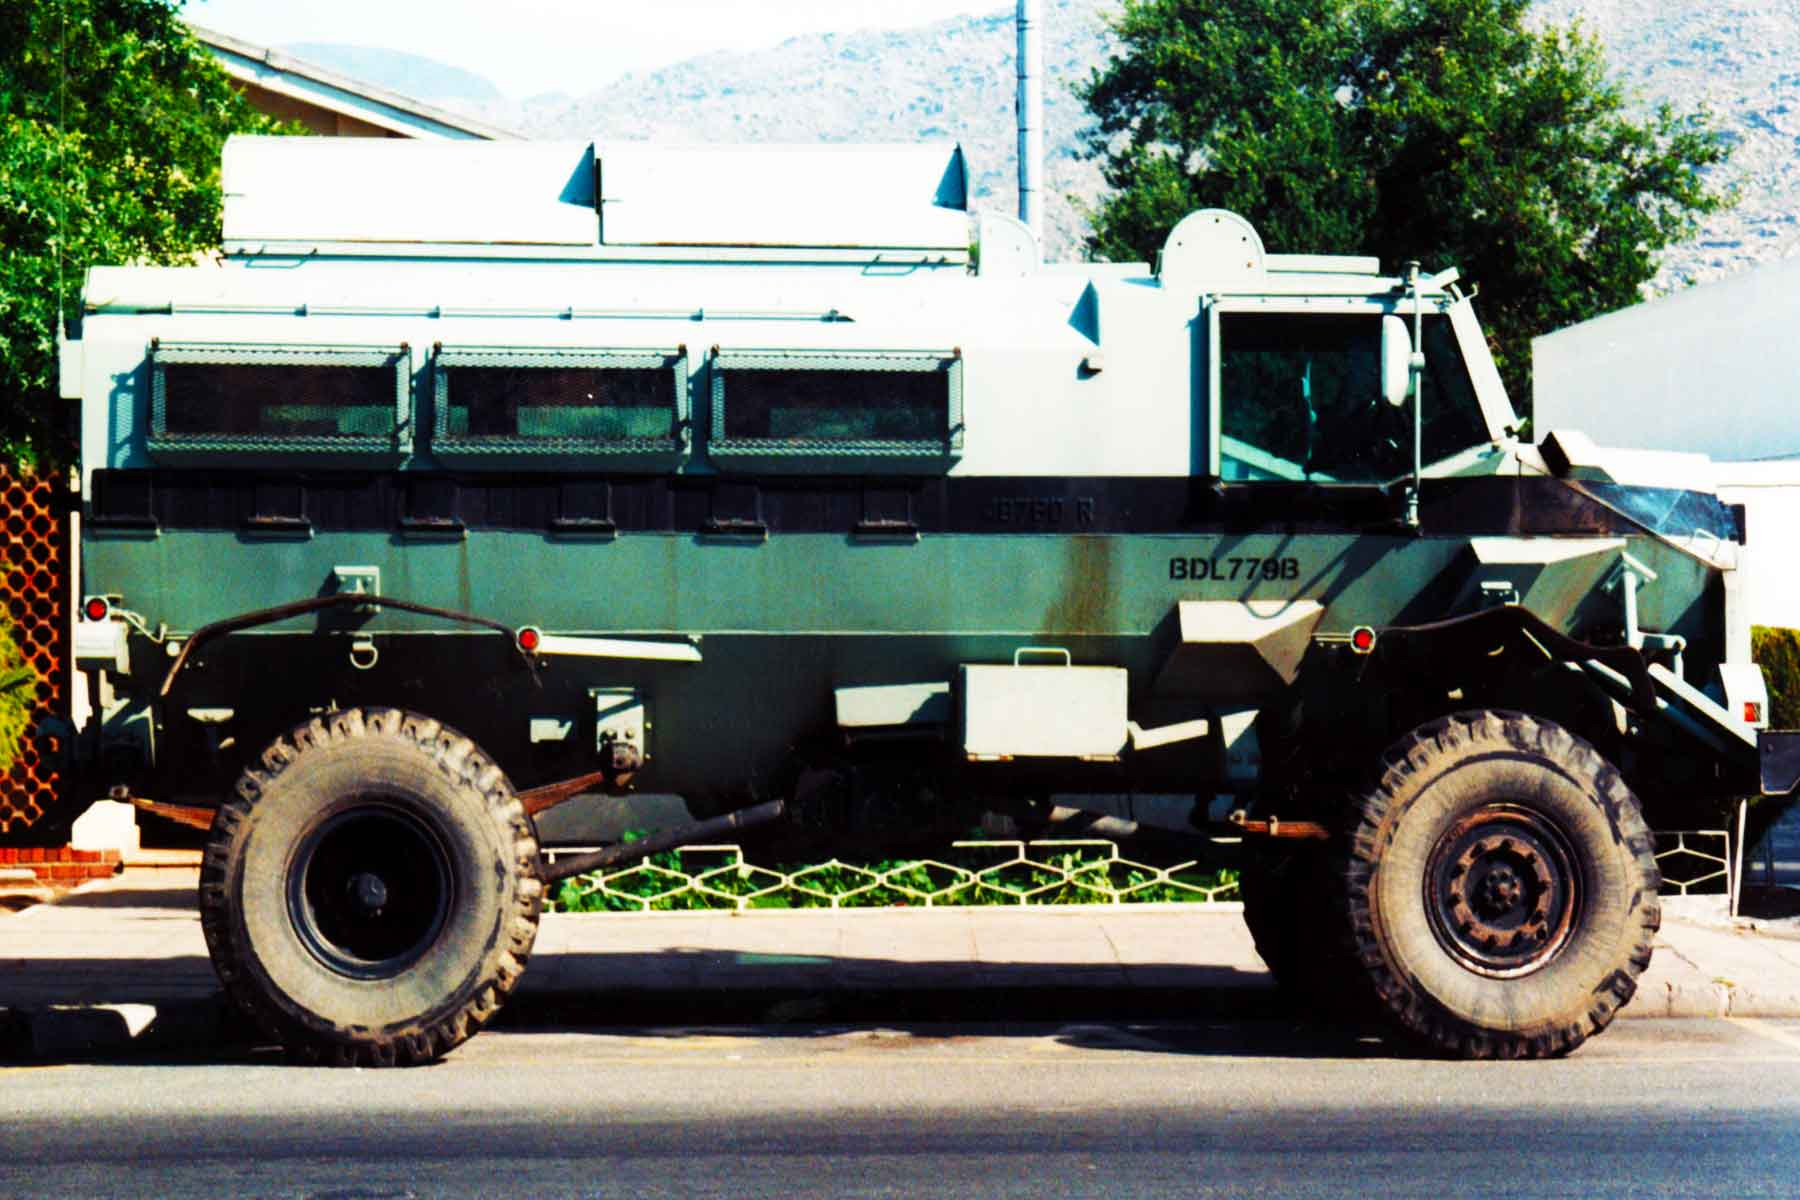 Casspir   Mine Protected Vehicle (MPV)   Soweto, South Africa   Steven Andrew Martin   Photo Journal